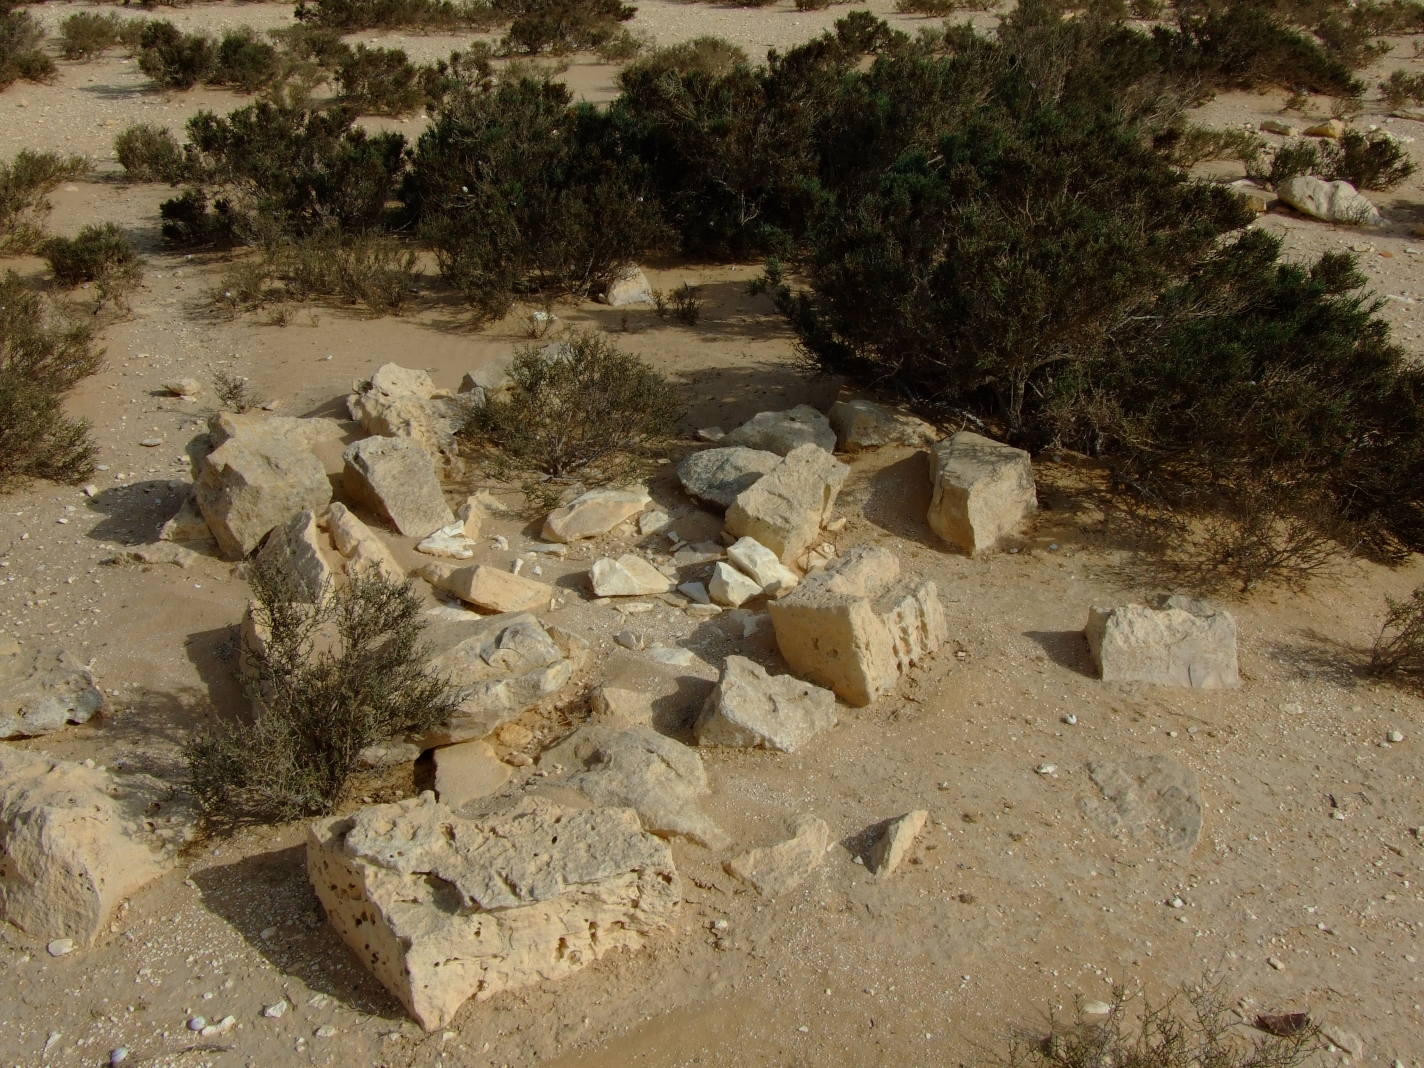 al-Khalasa - الخلصة : Graveyard, SE of the village